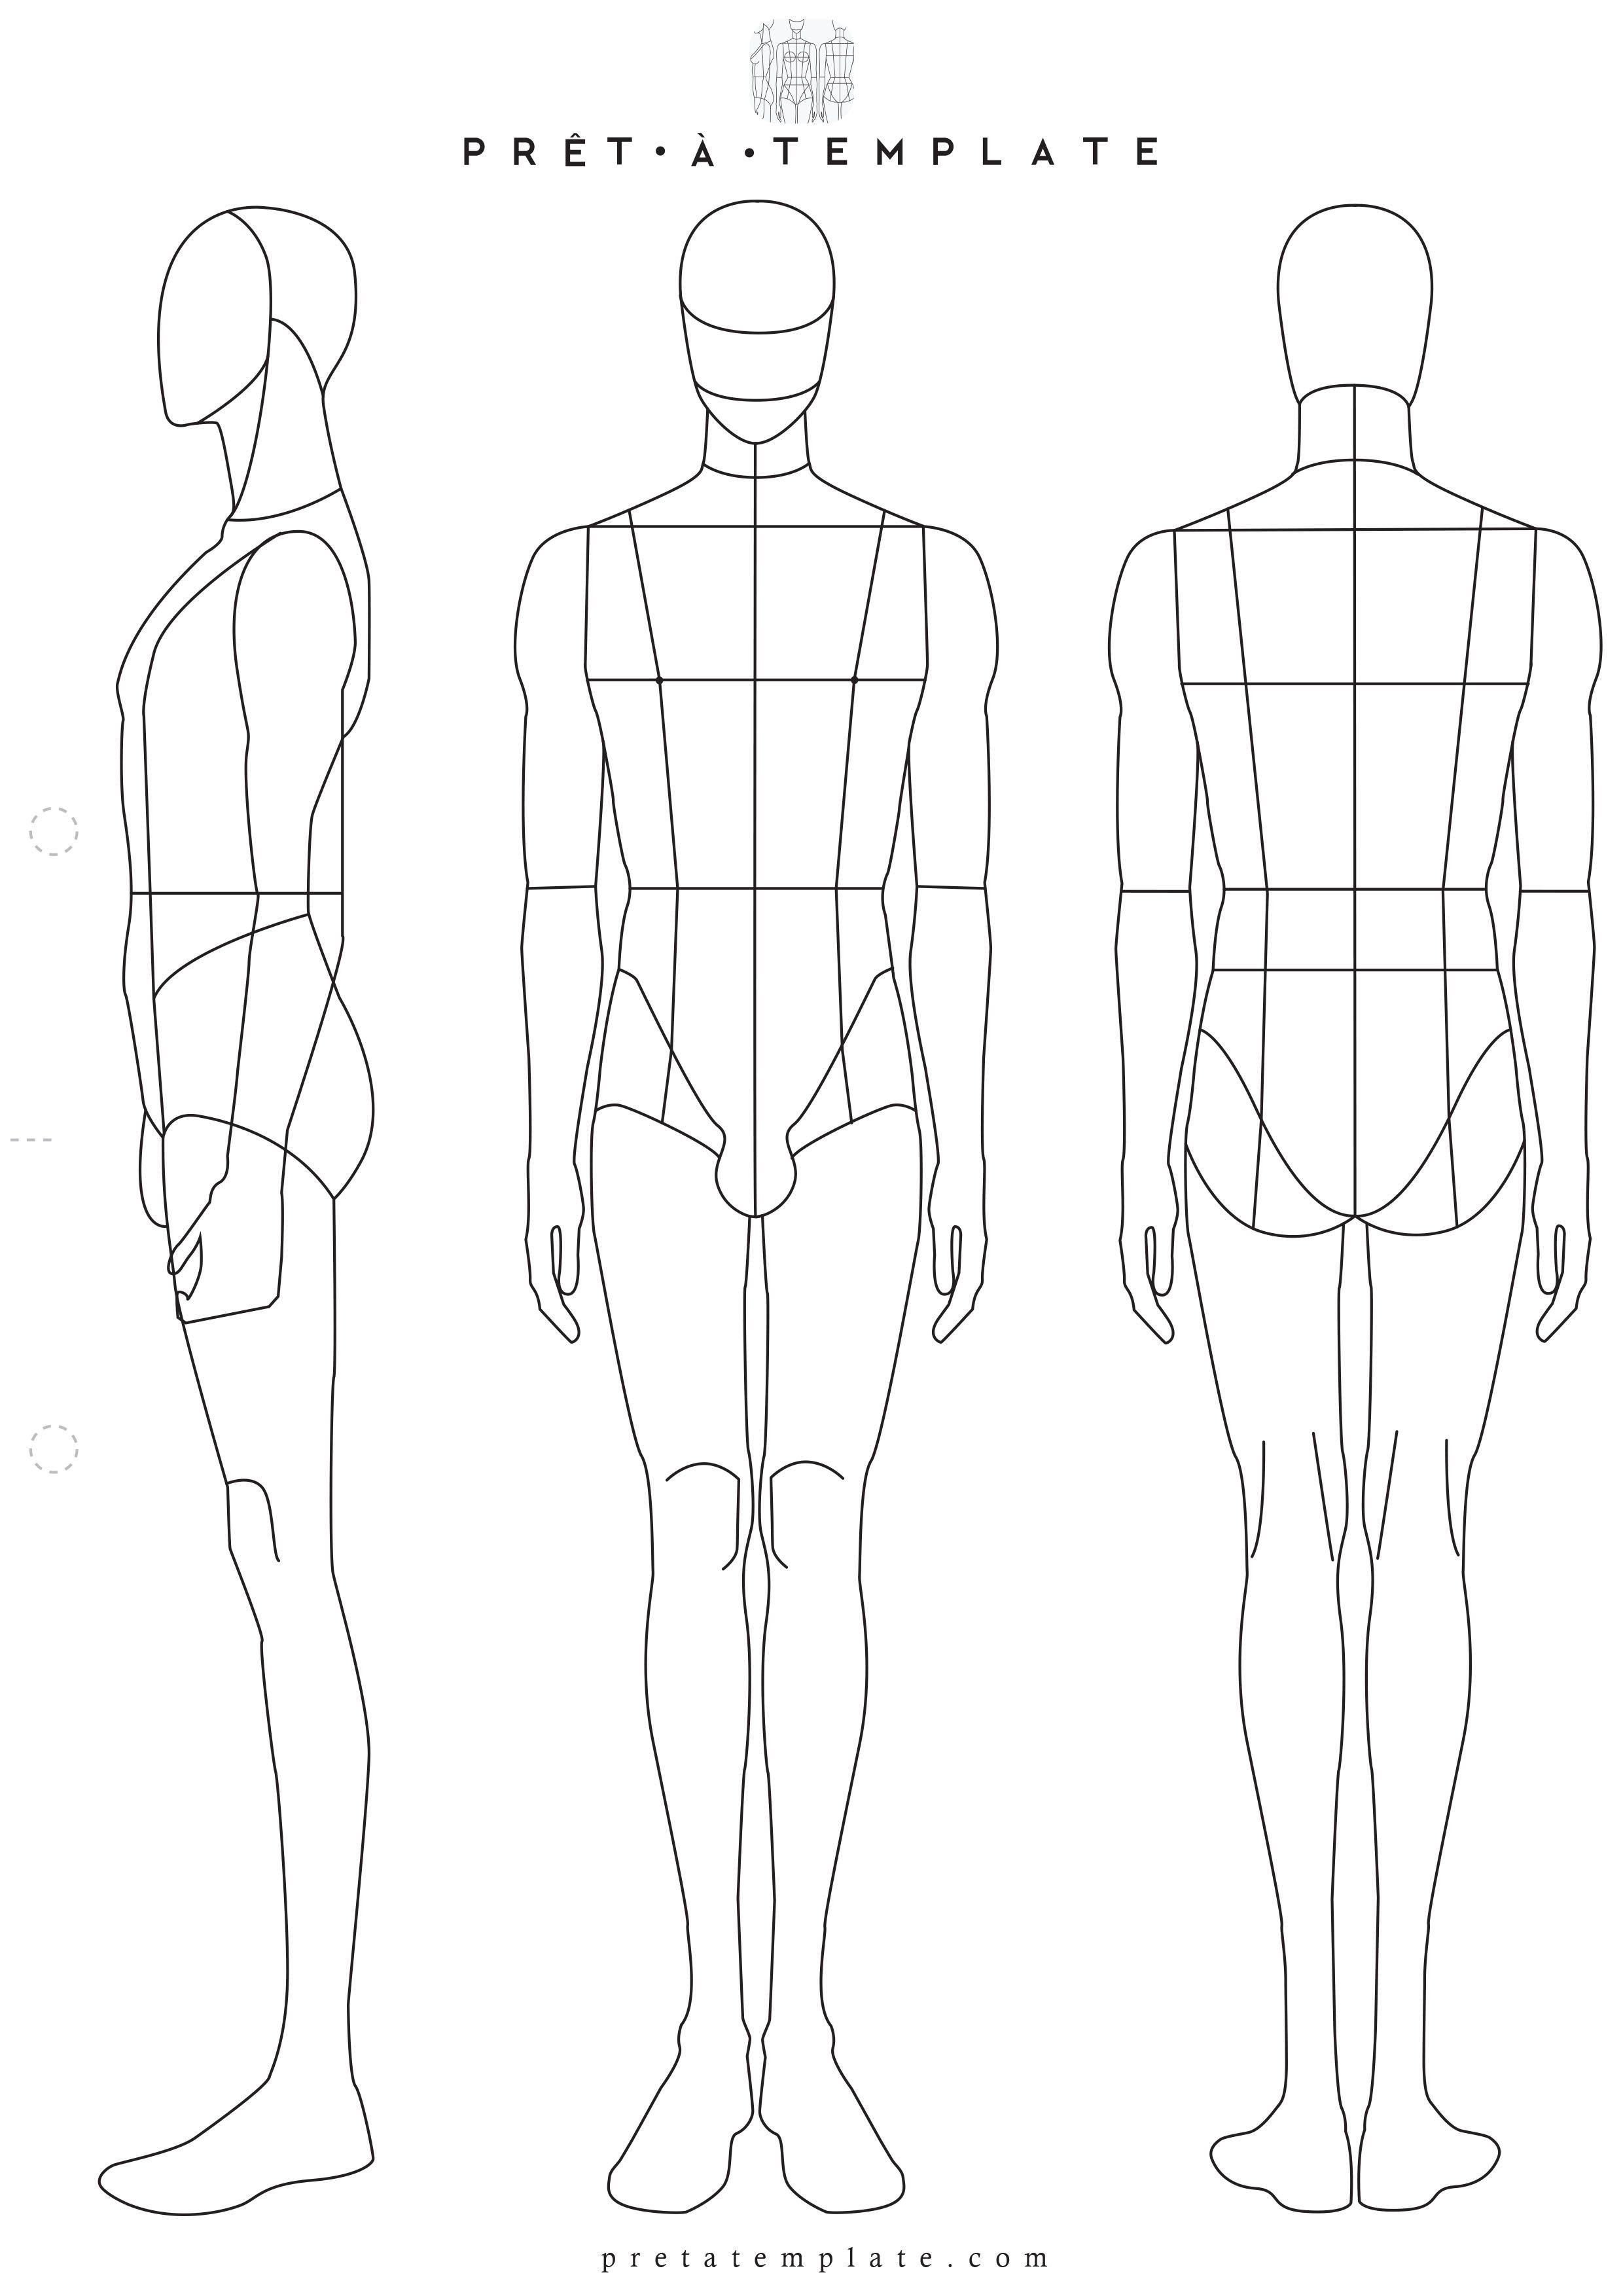 Body Template for Fashion Design Man Male Body Figure Fashion Template D I Y Your Own